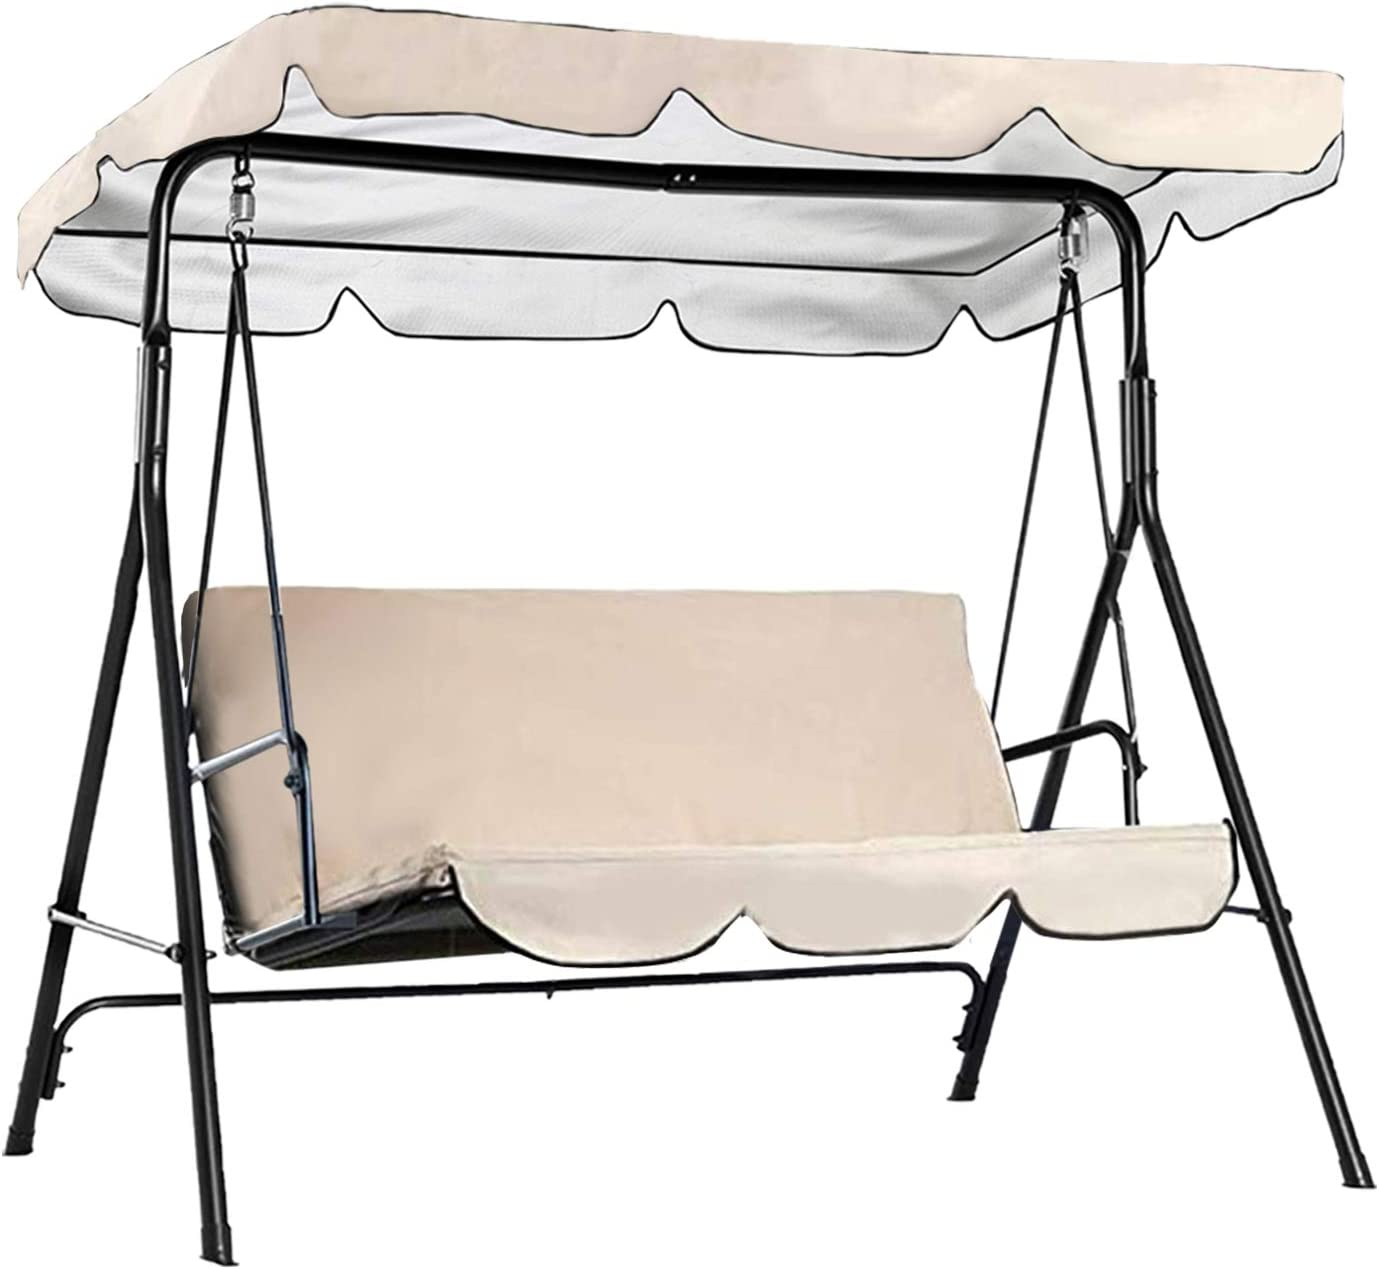 Persever Patio Swing Canopy Replacement Cover, Garden Swing Canopy Top Cover, Swing Chair Awning, Unique Velcro Design Windproof Beige 98x72x7in